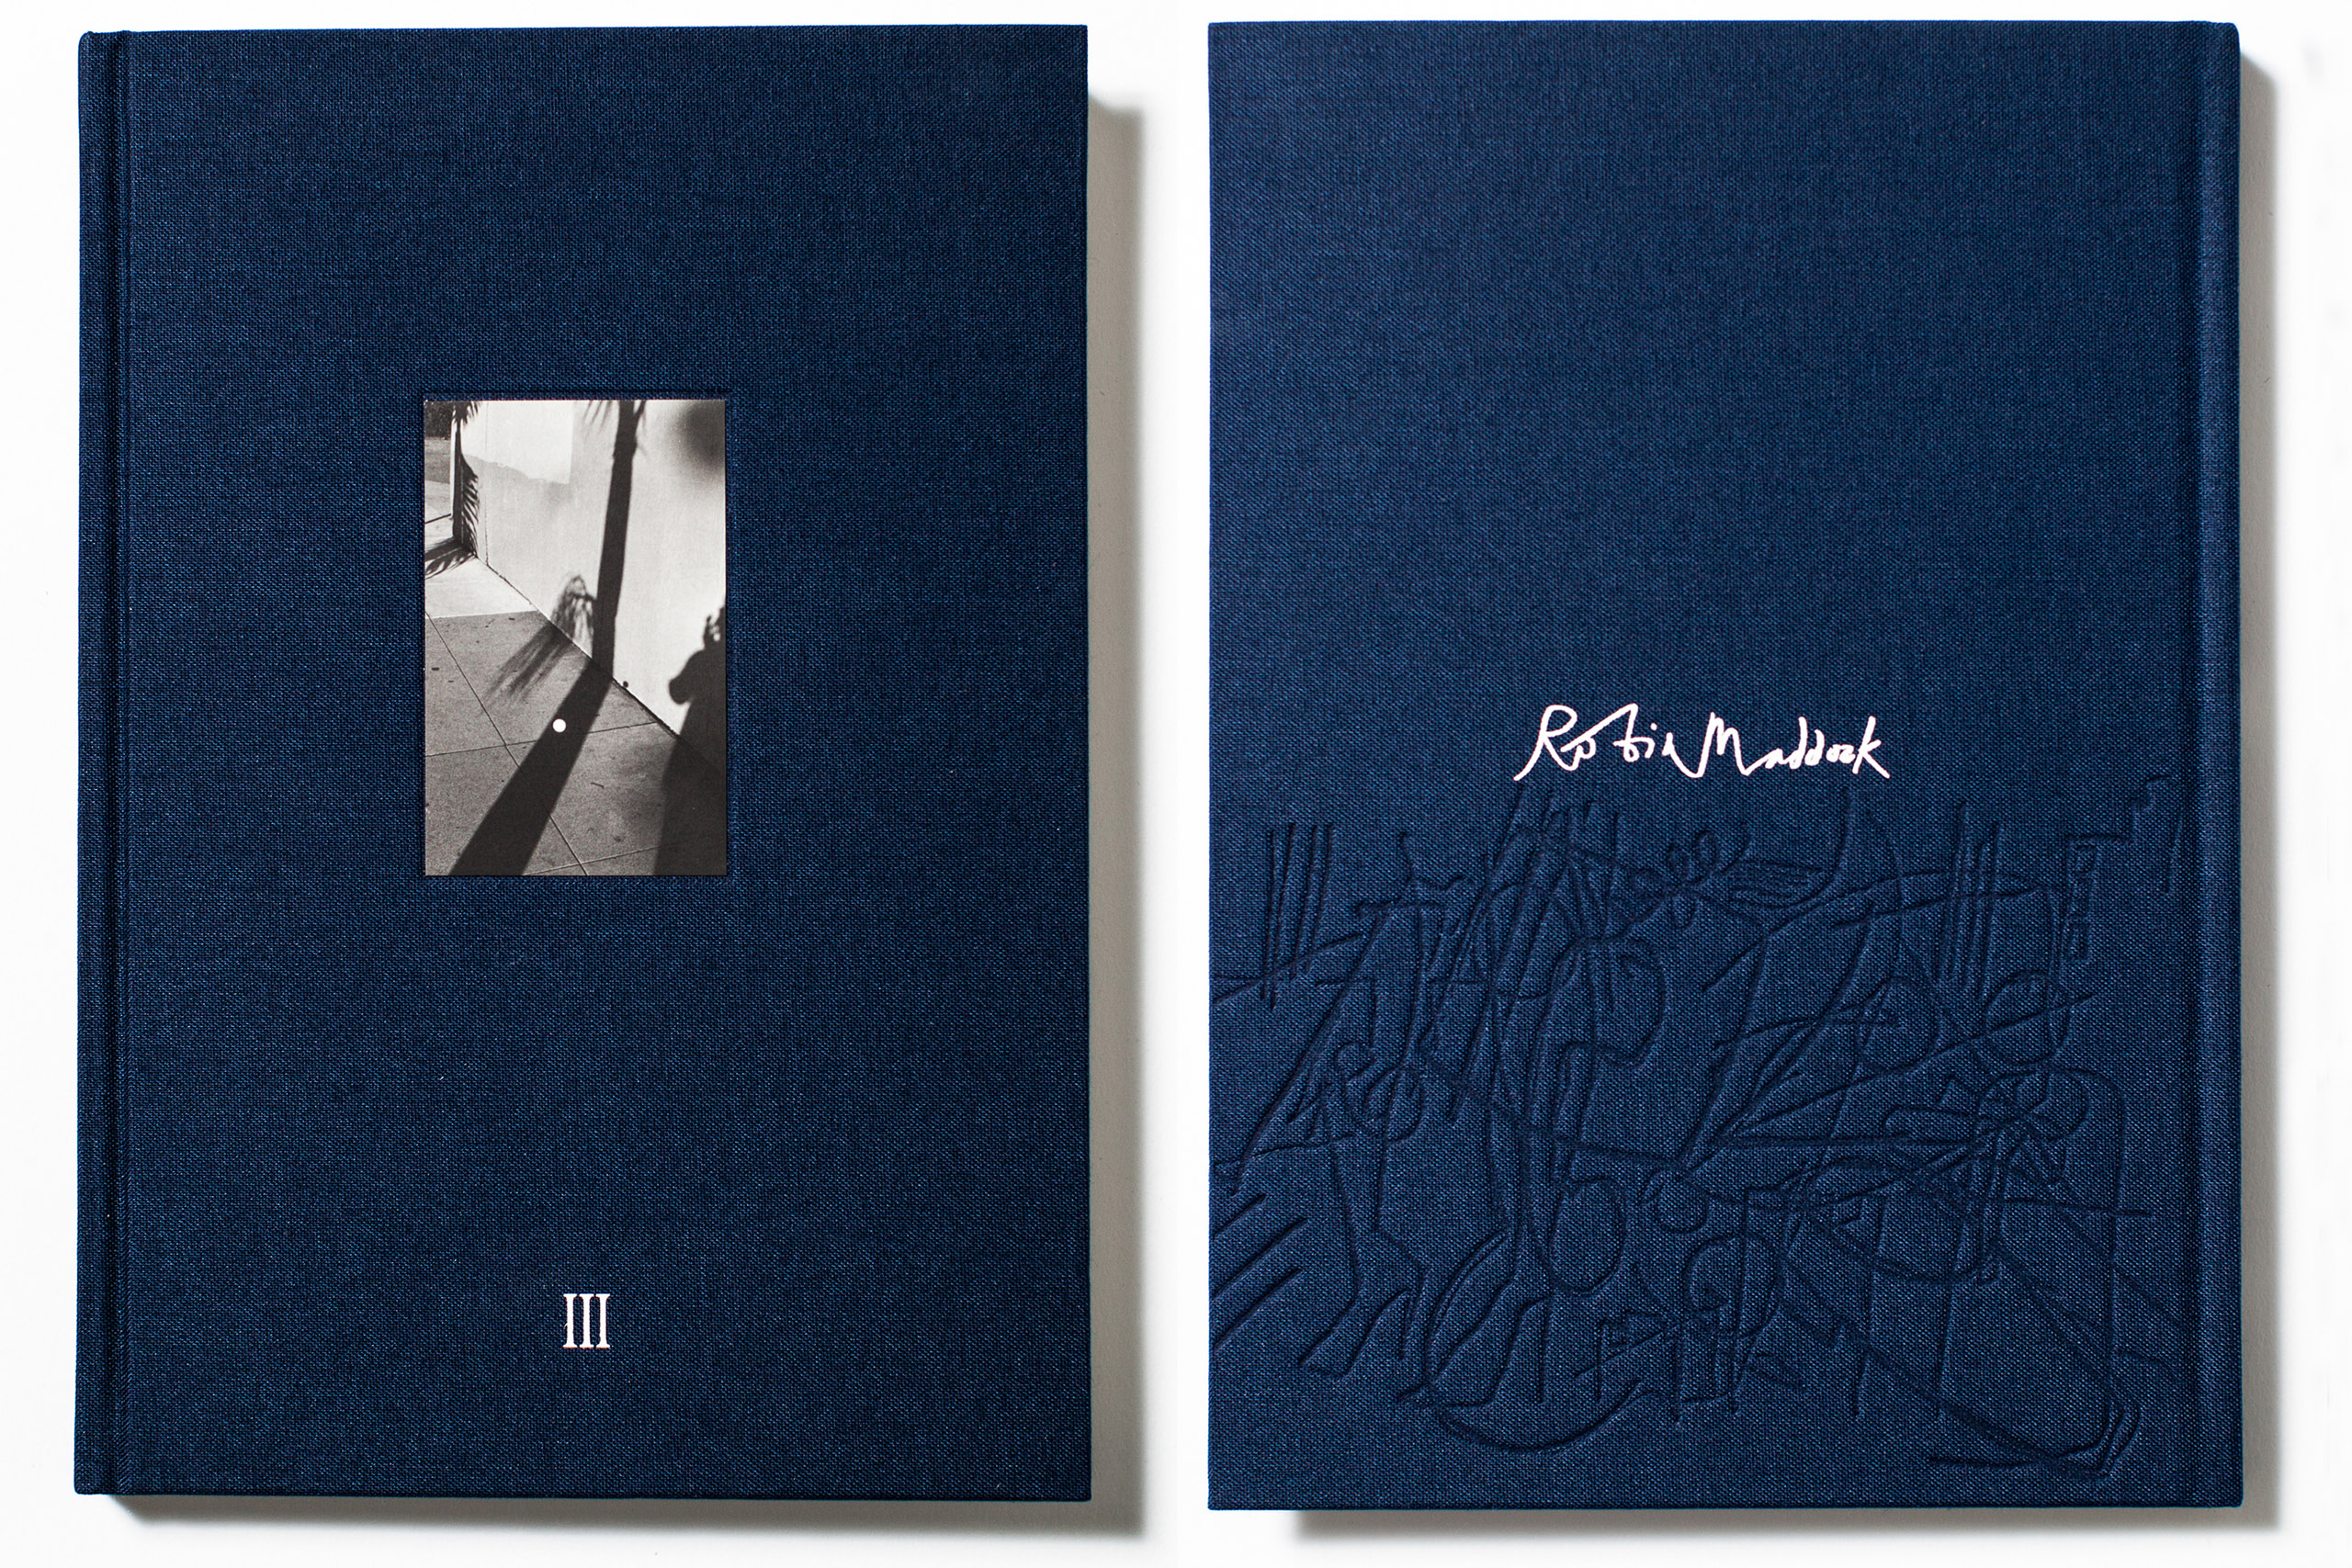 III                                by                               Robin Maddock, published by Trolley Books, selected by Jason Fulford, photographer and Publisher of J&L Books.